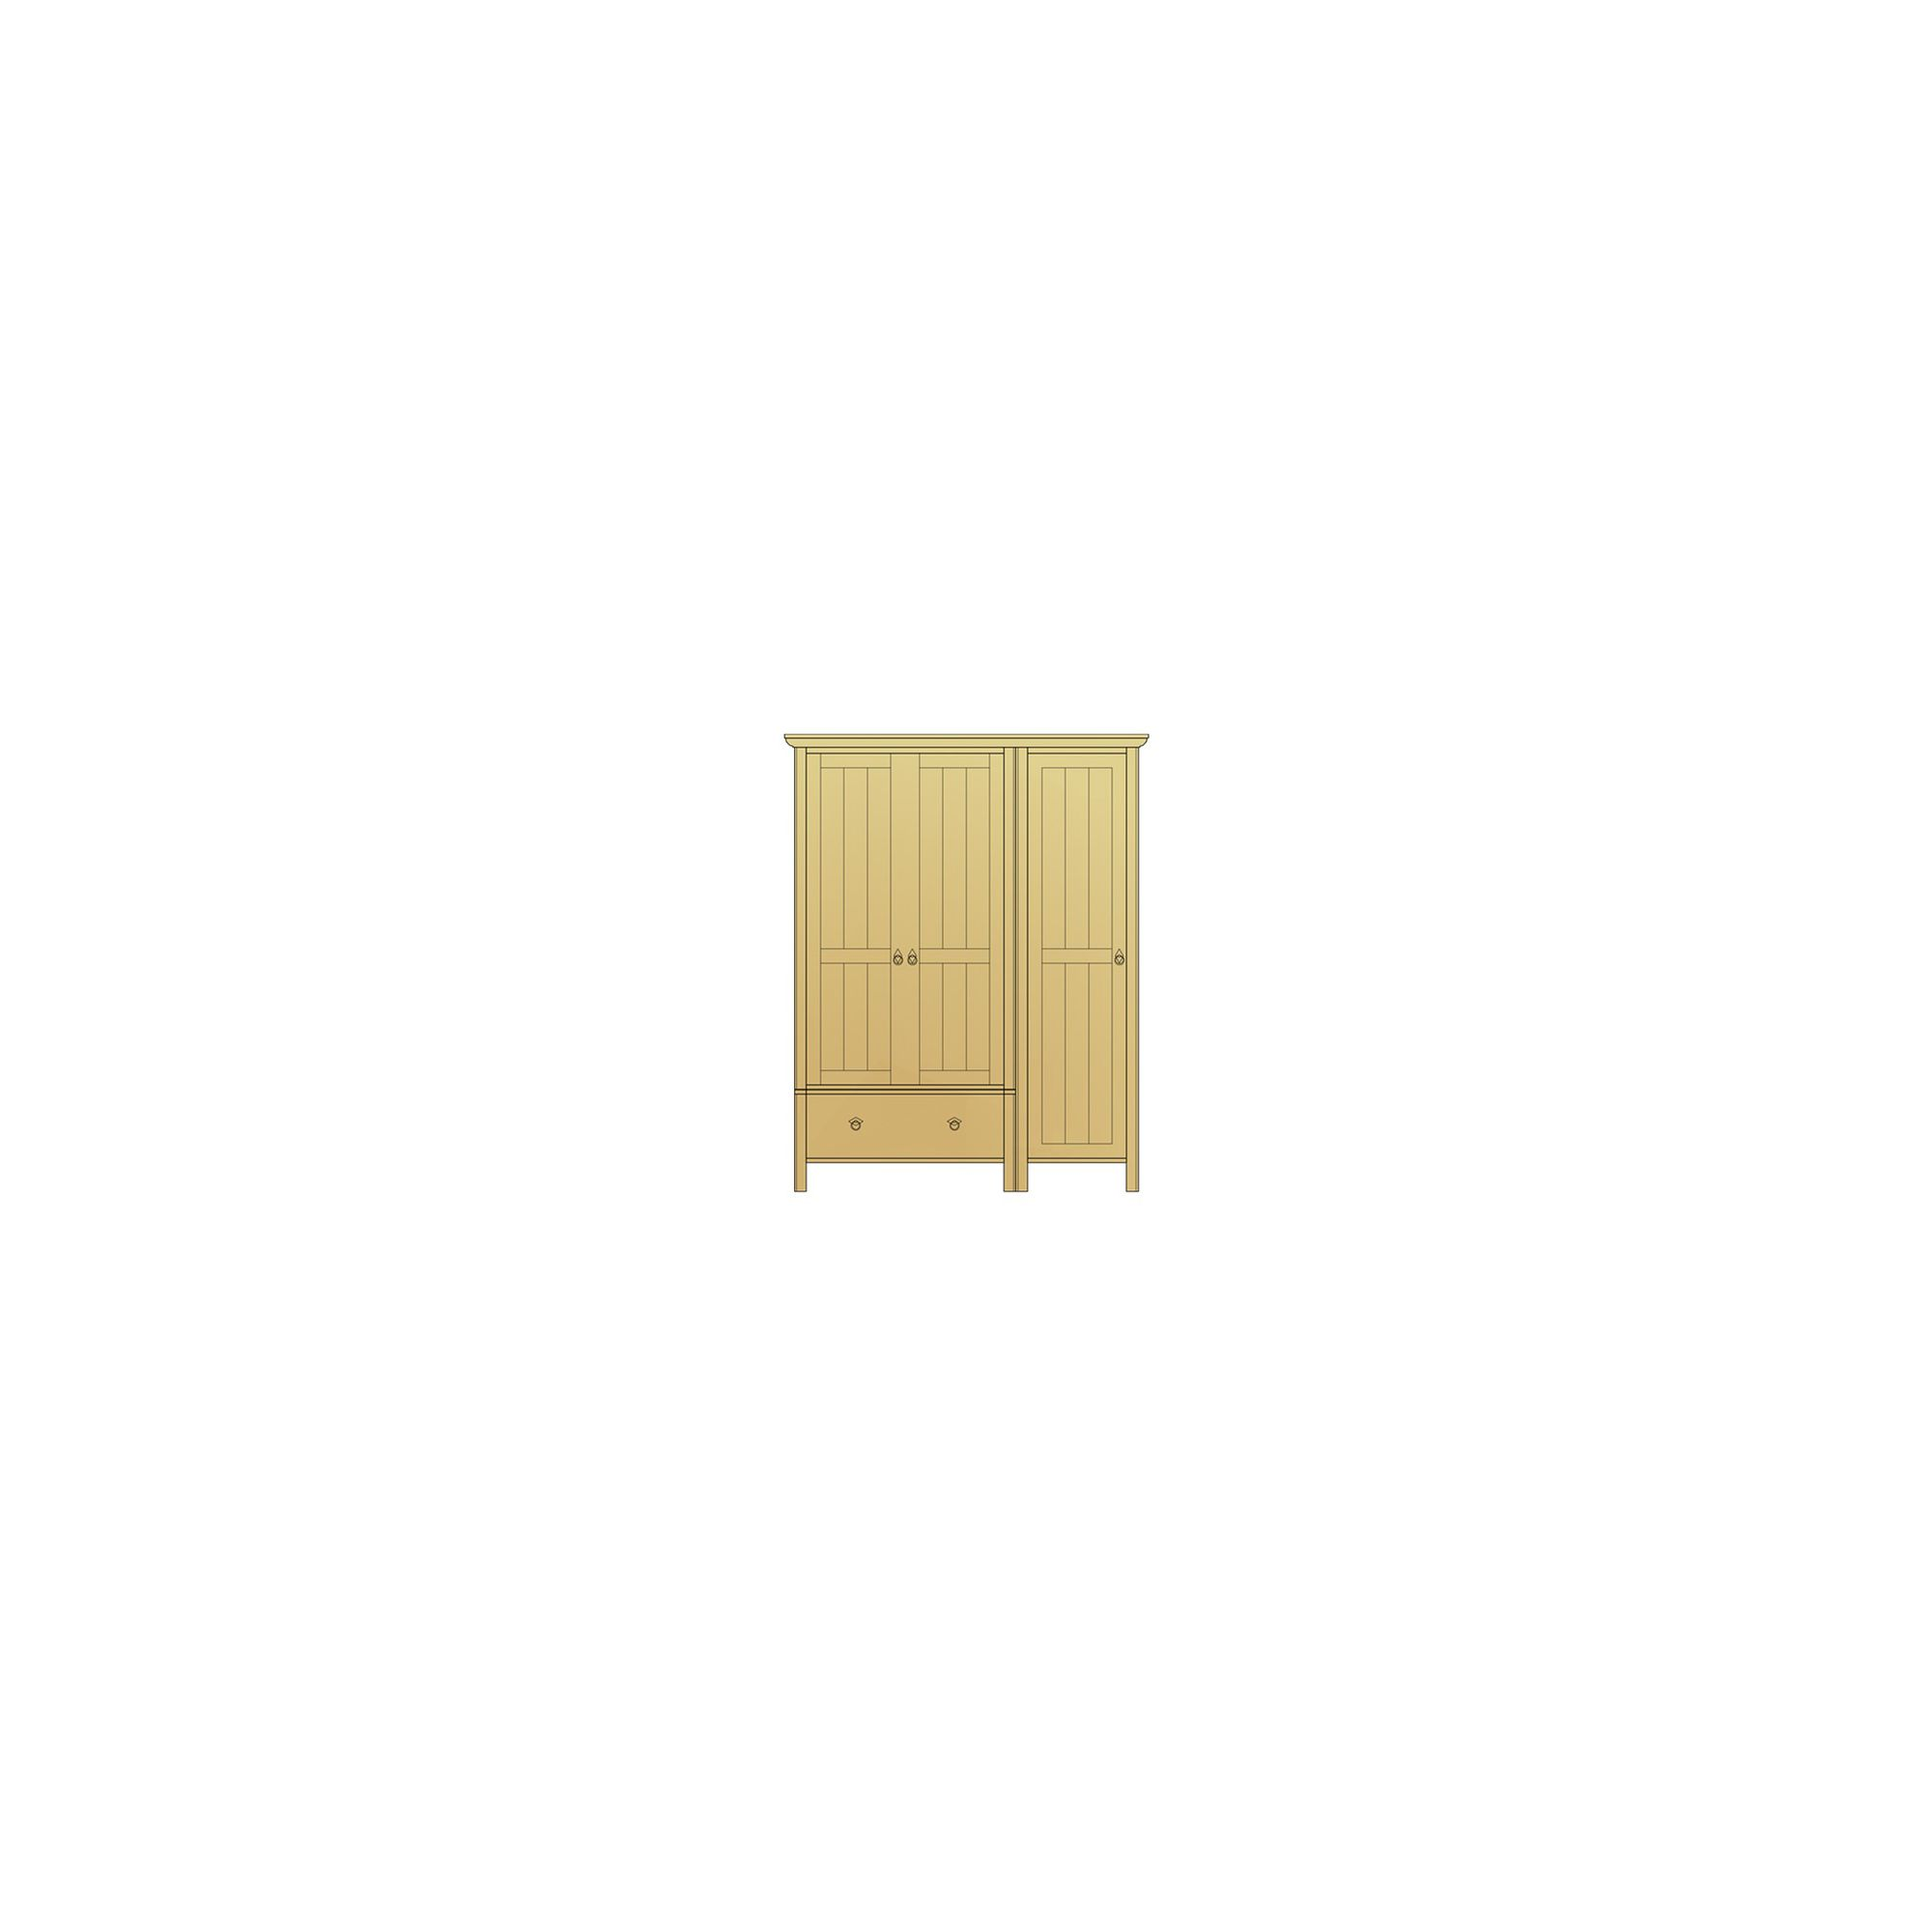 Sherry Designs Simply Bedroom 3 Door 1 Drawer Combination Oak Wardrobe at Tescos Direct